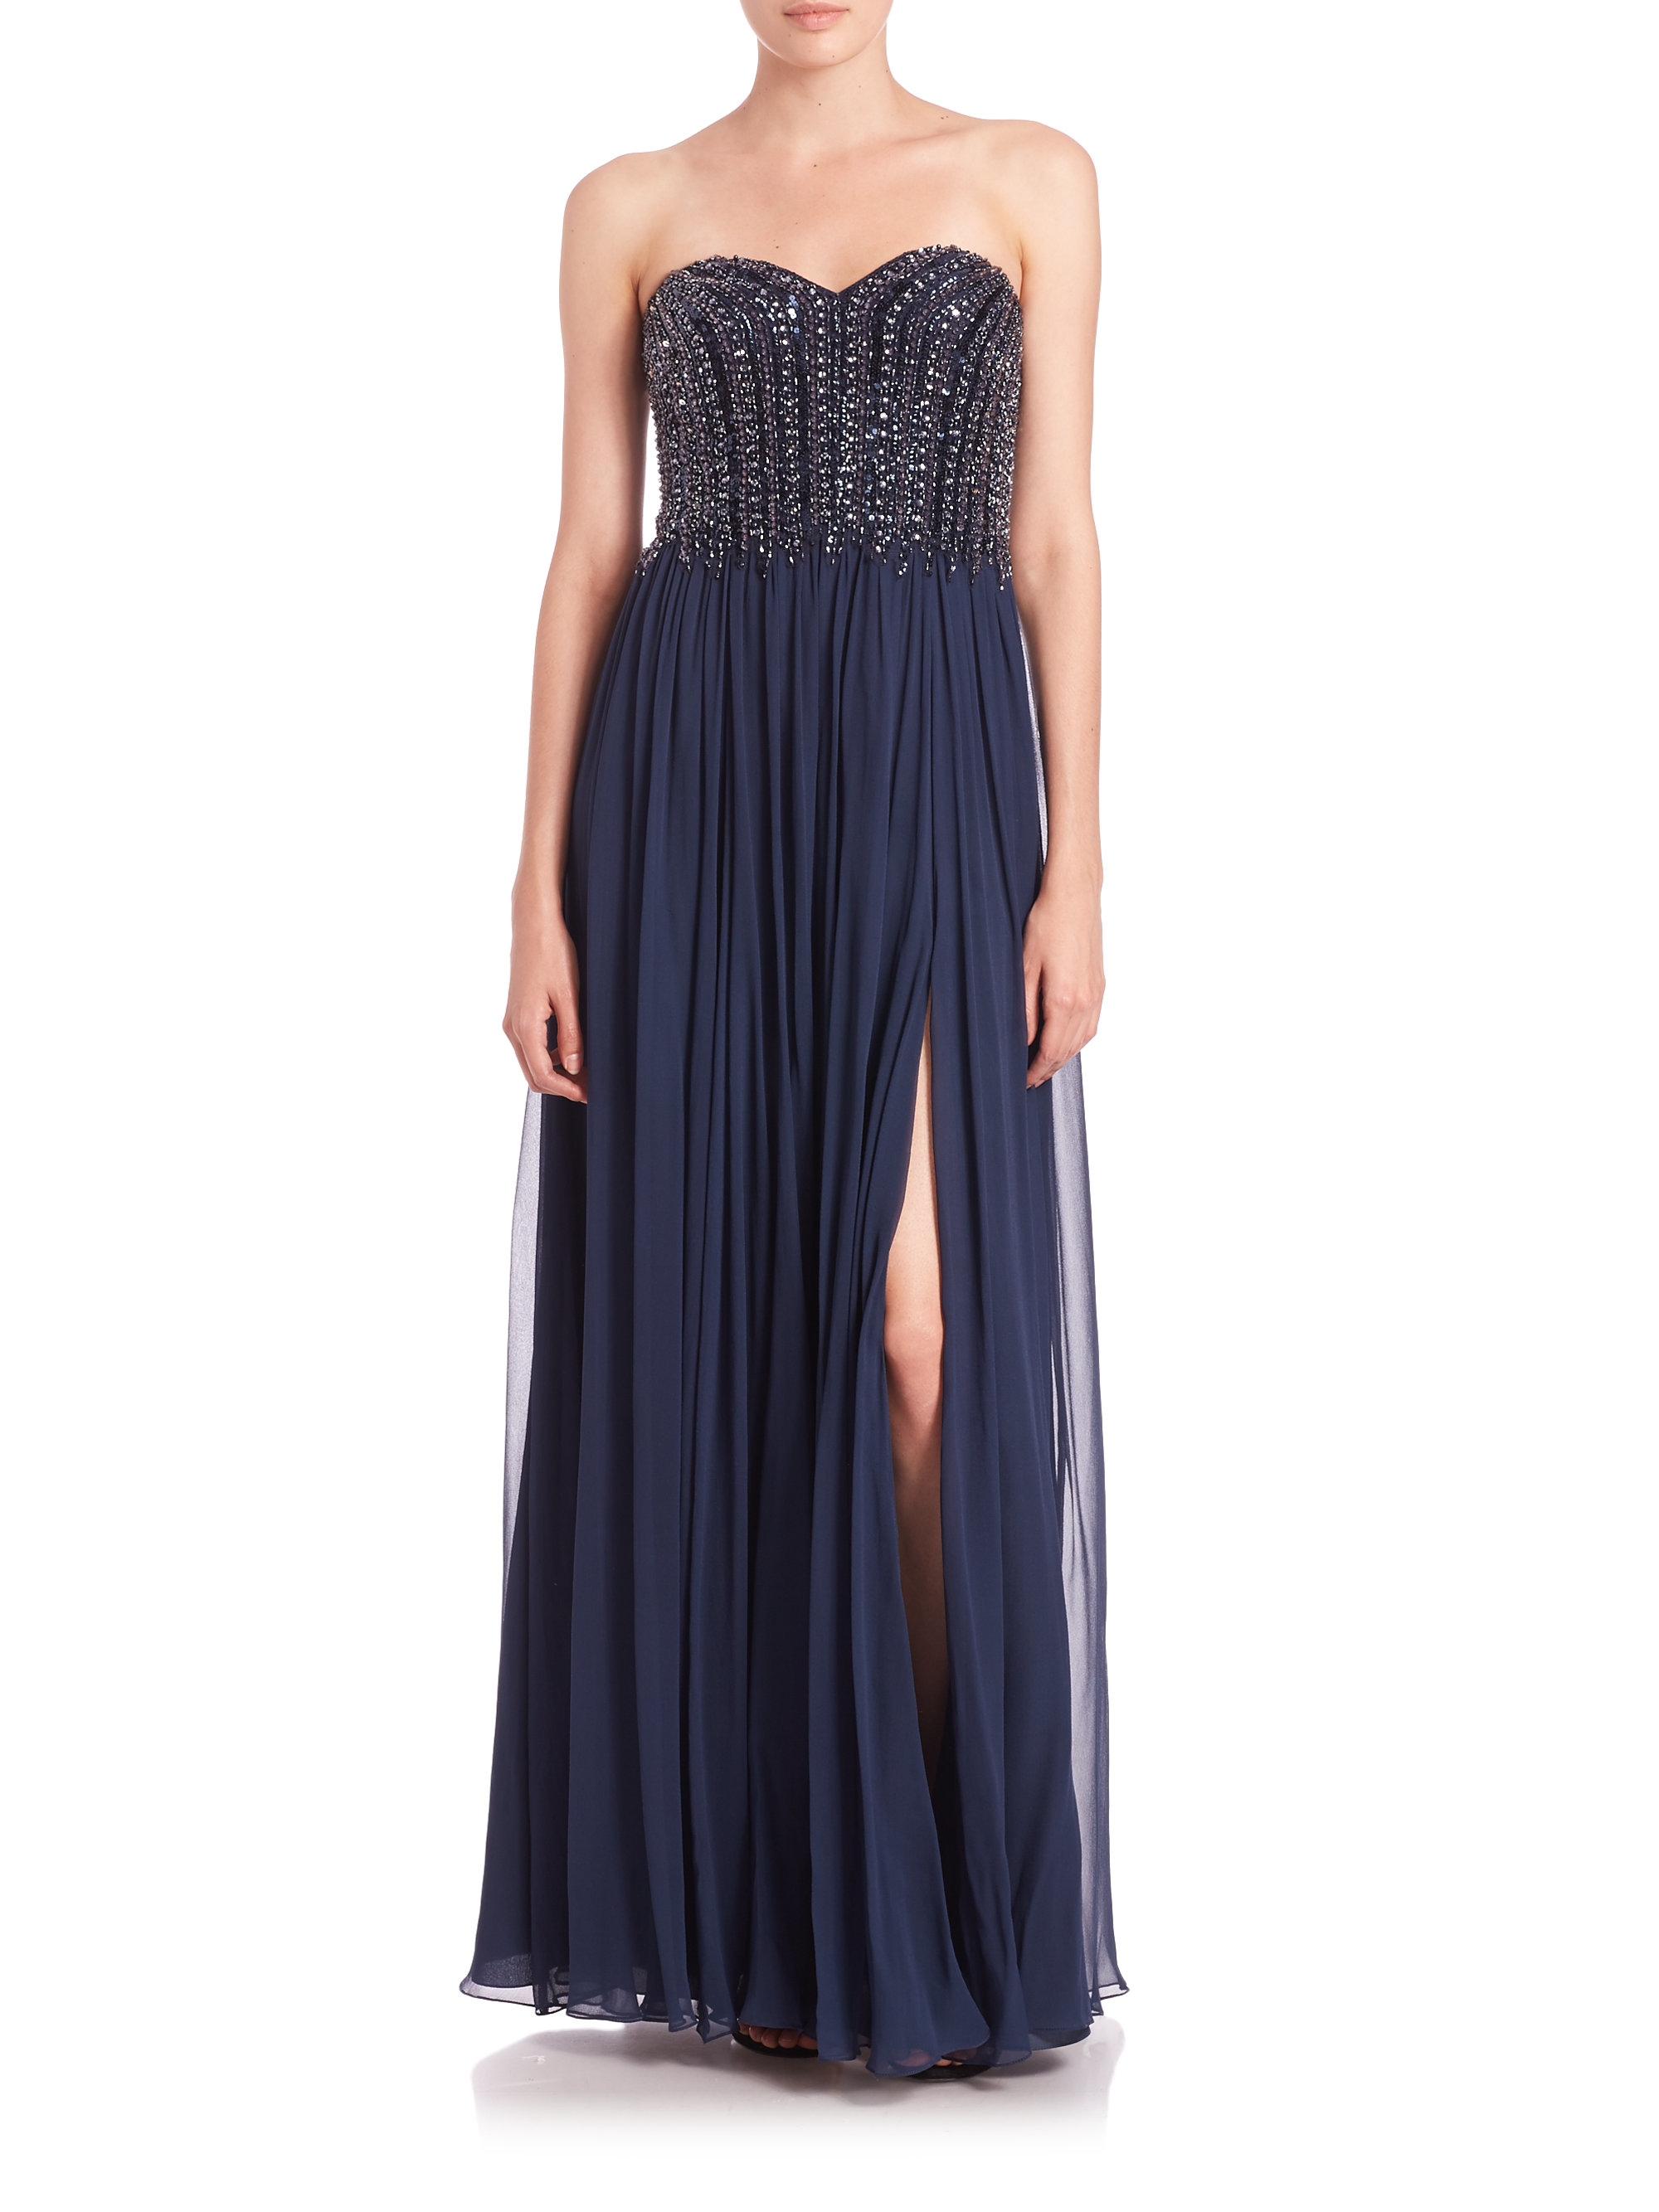 687f4a8039f Lyst - David Meister Strapless Beaded-bodice Chiffon Gown in Blue